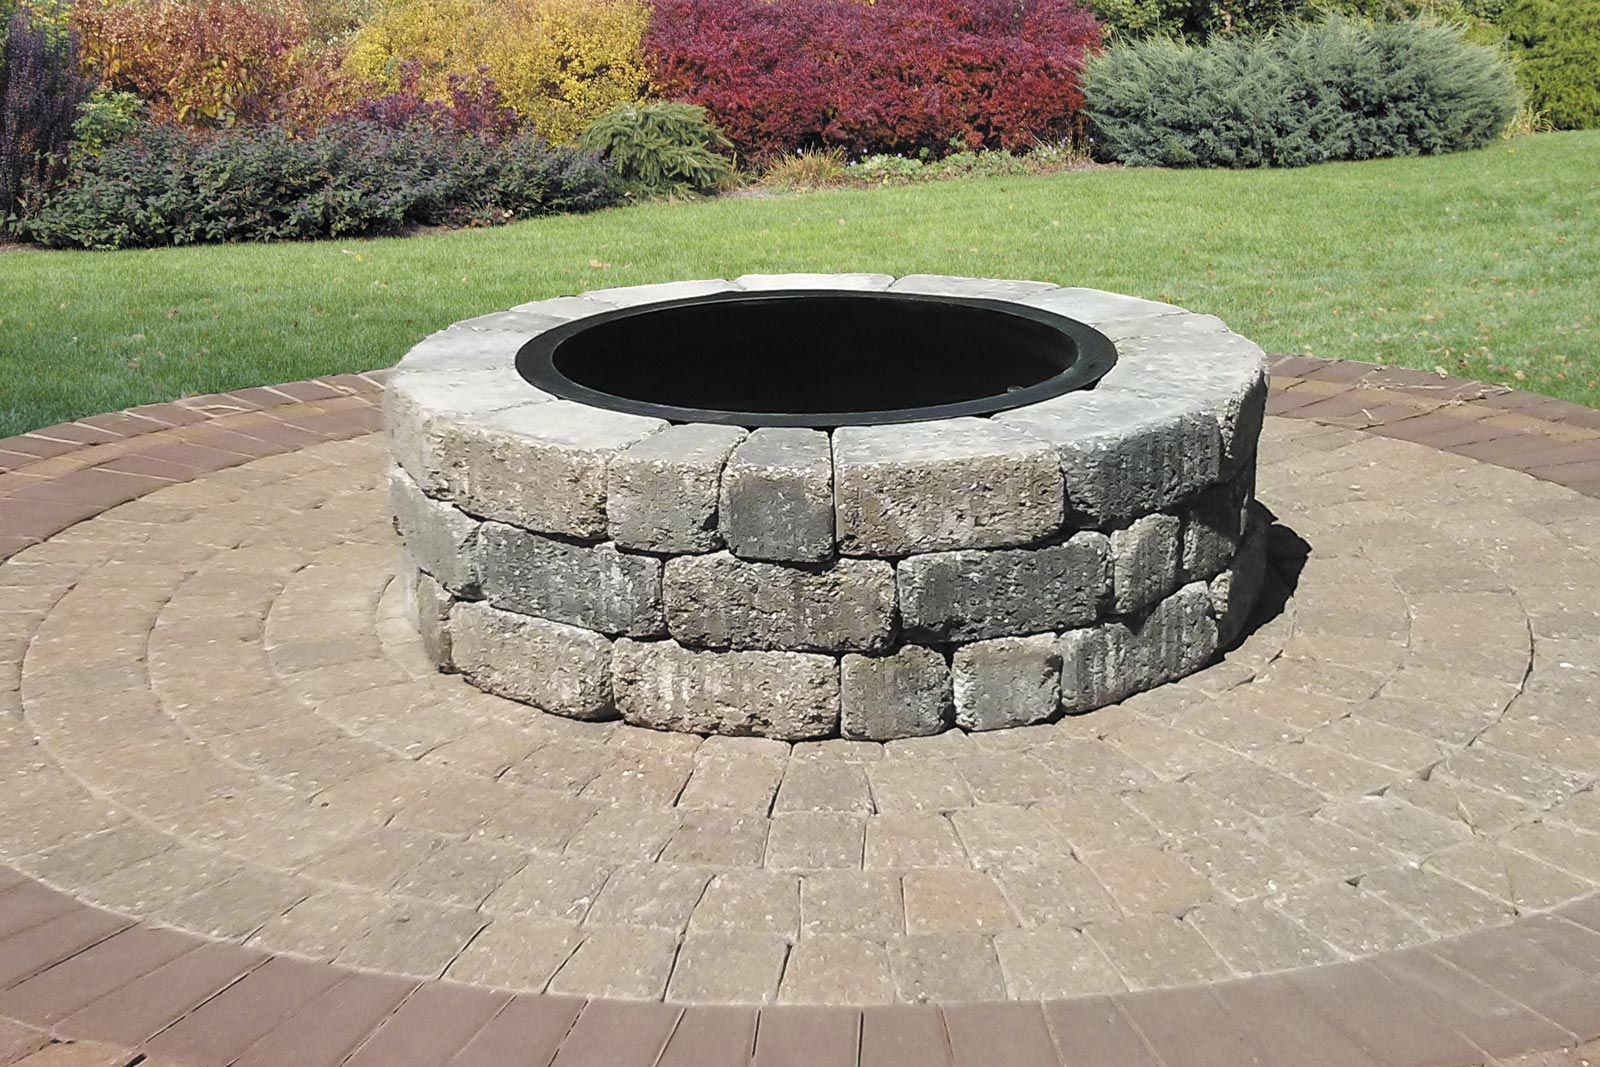 Madera Block Romanstone Hardscapes Versatile Old World Charm Paver Fire Pit Fire Pit Kit Outdoor Fire Pit